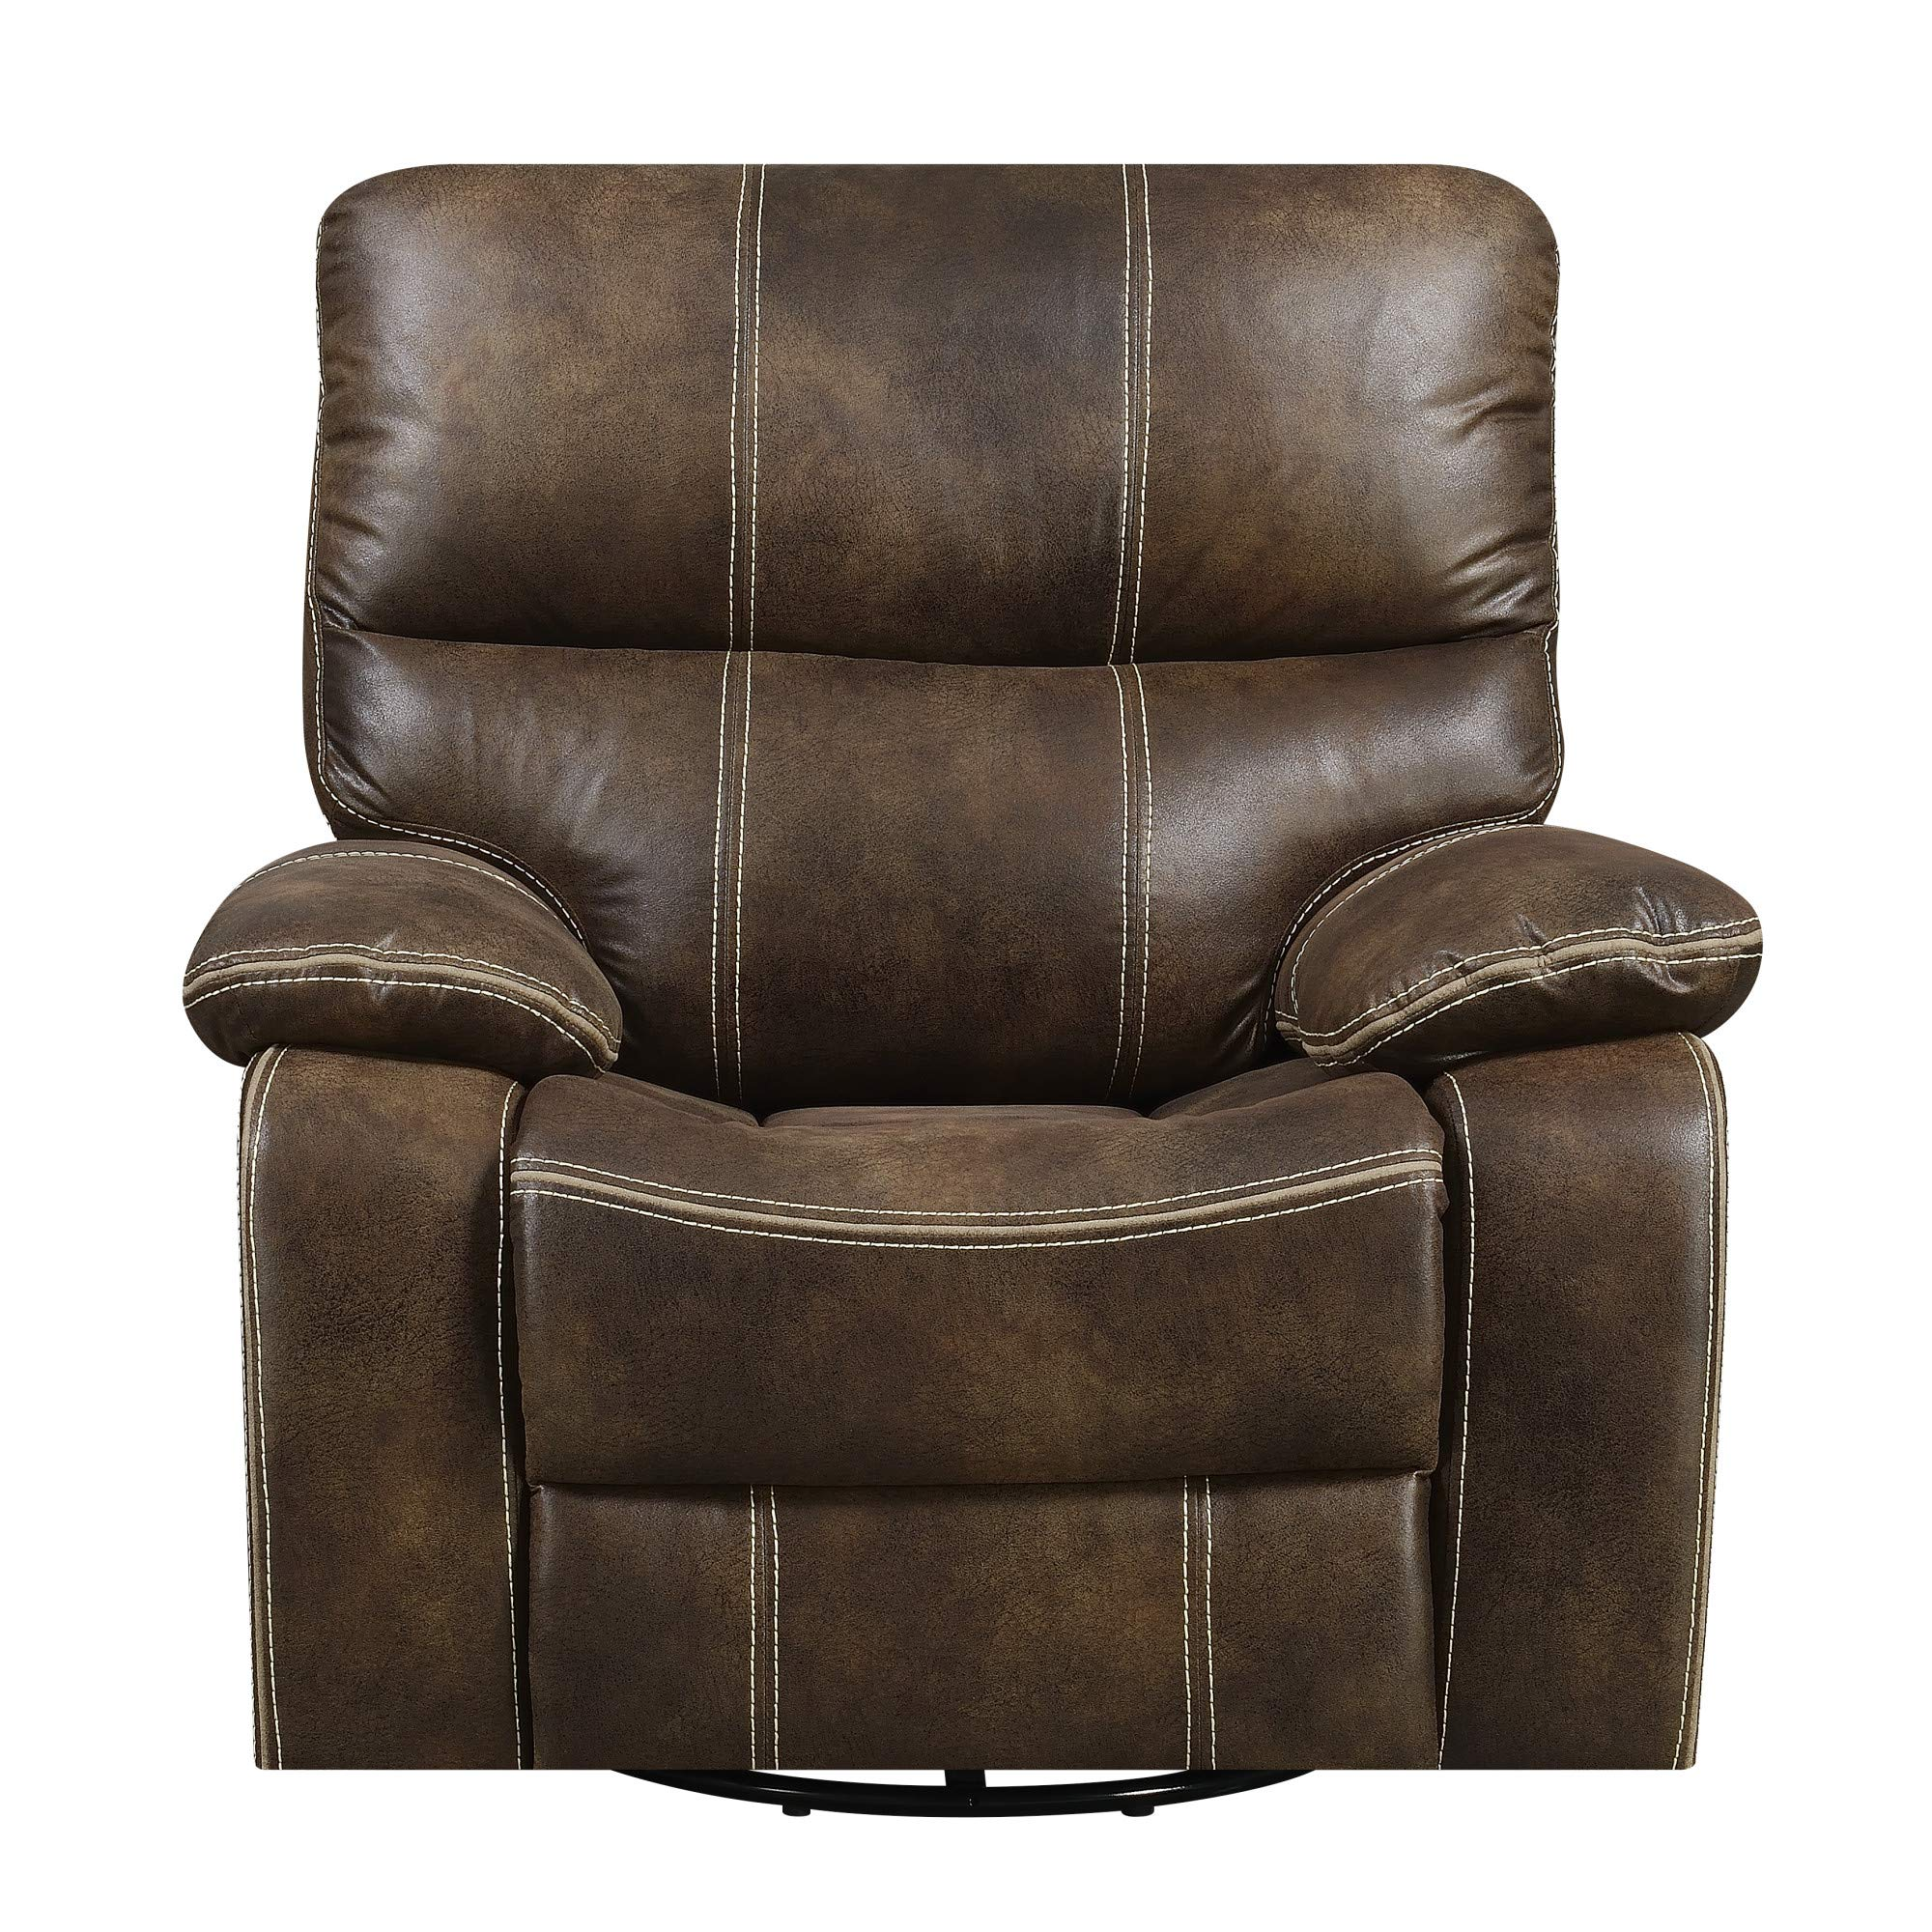 Bassfield Swivel Reclining Glider in Brown with Swivel, Glide, And Recline Motion, by Artum Hill